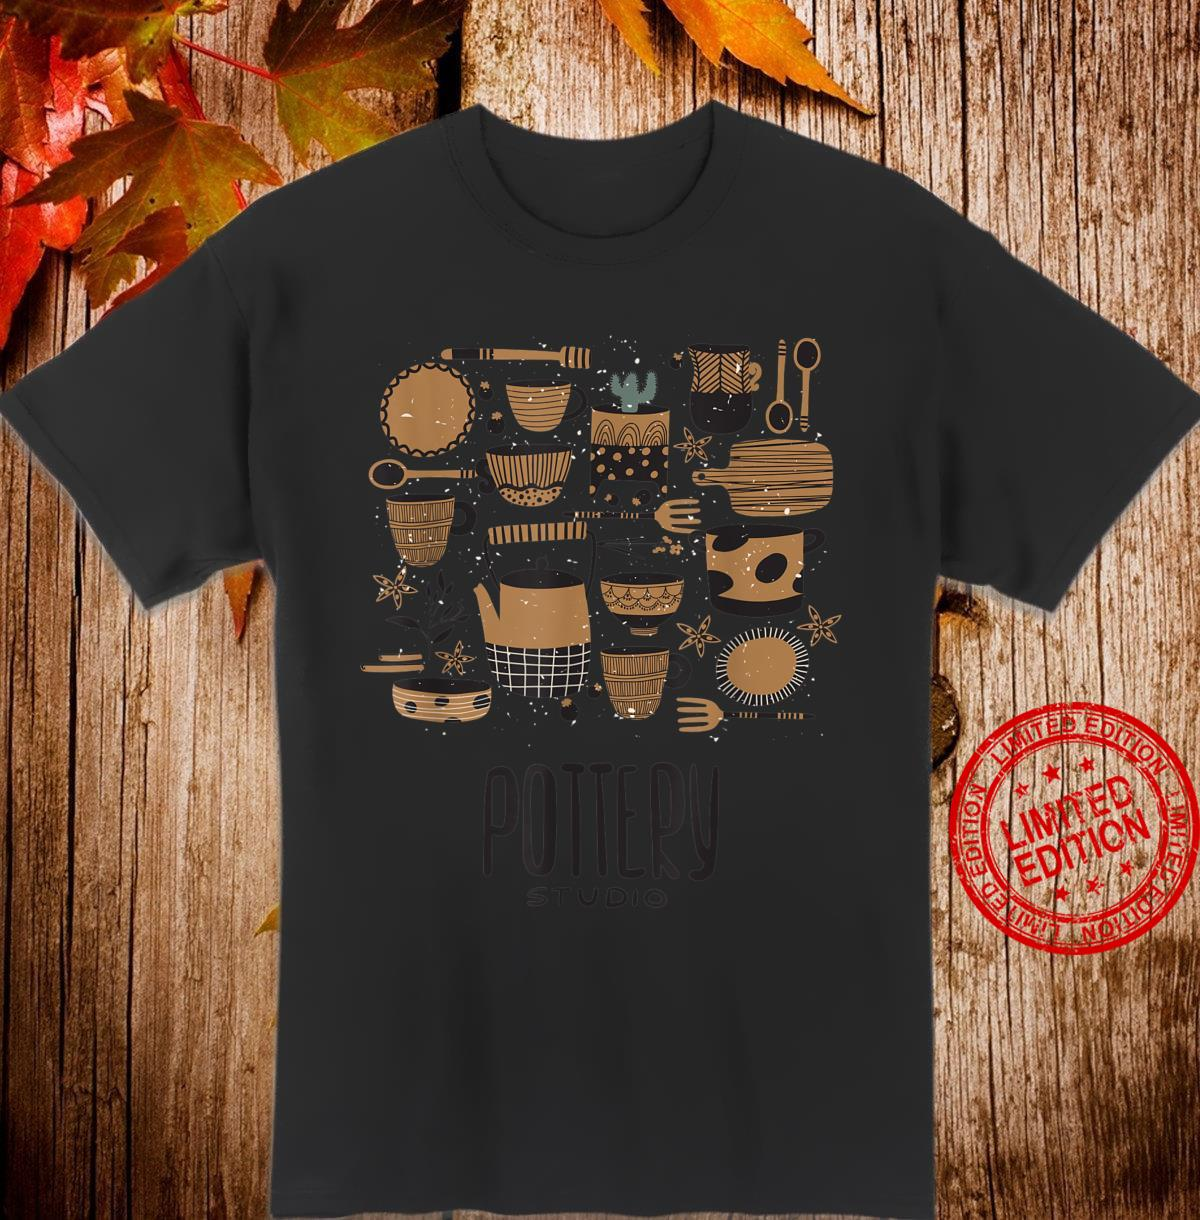 Pottery Studio Design Shirt